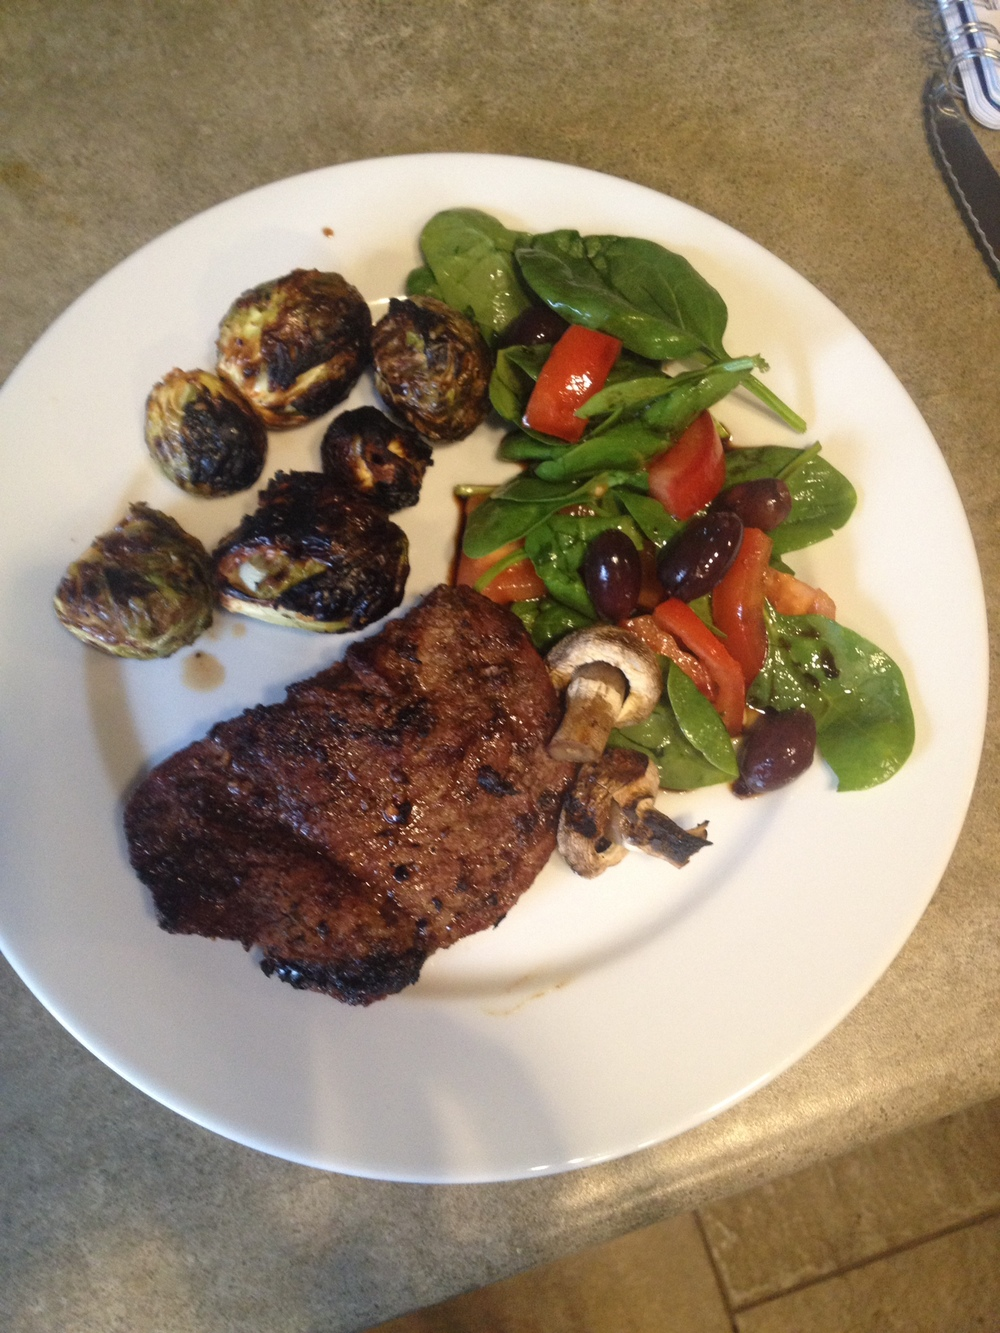 Simple Grilled Steak with grilled brussels sprouts and salad